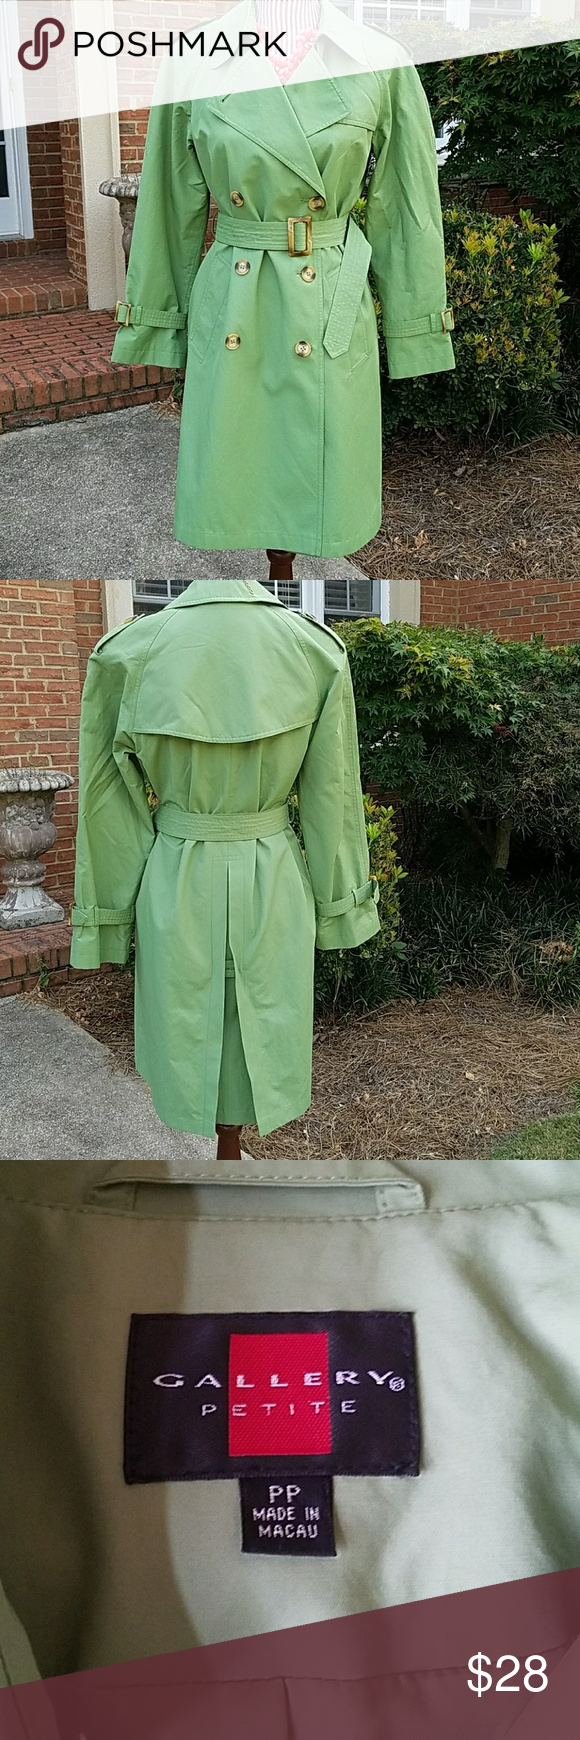 Green Trench Coat Lovely green trench coat with belt and adjustable sleeve buckles. Slit in the back and button details on shoulders. Pockets. Fully lined. Worn once. Excellent condition. Size says PP. Bust: 19.5, Length: 35 inches. 65% Cotton, 35% Nylon. Add to bundle to save! Gallery Jackets & Coats Trench Coats